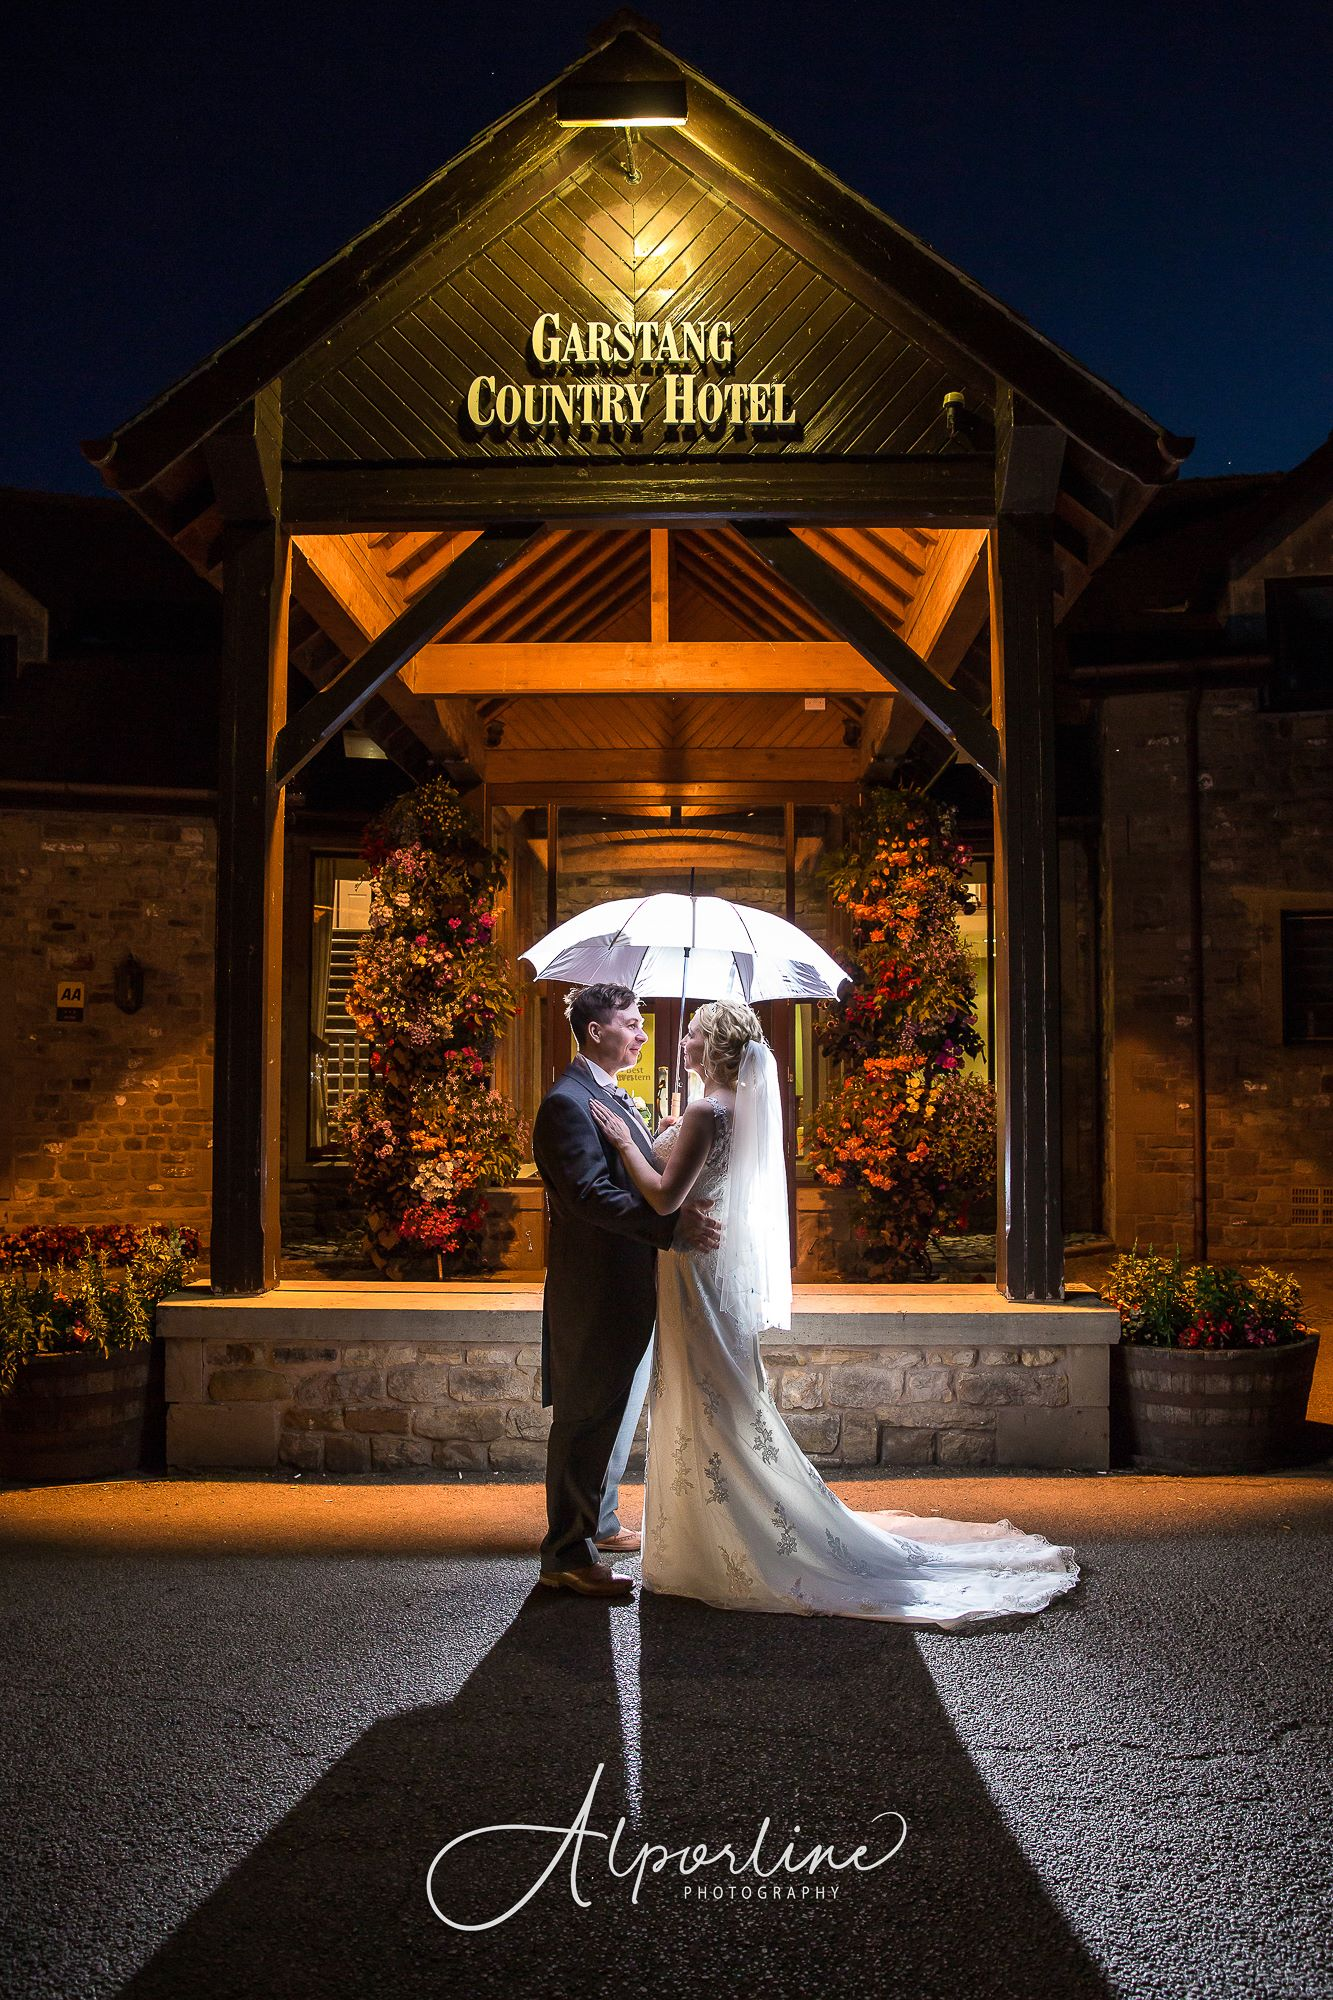 Garstang-country-hotel-wedding-photograph-preston-wedding-photographer.jpg